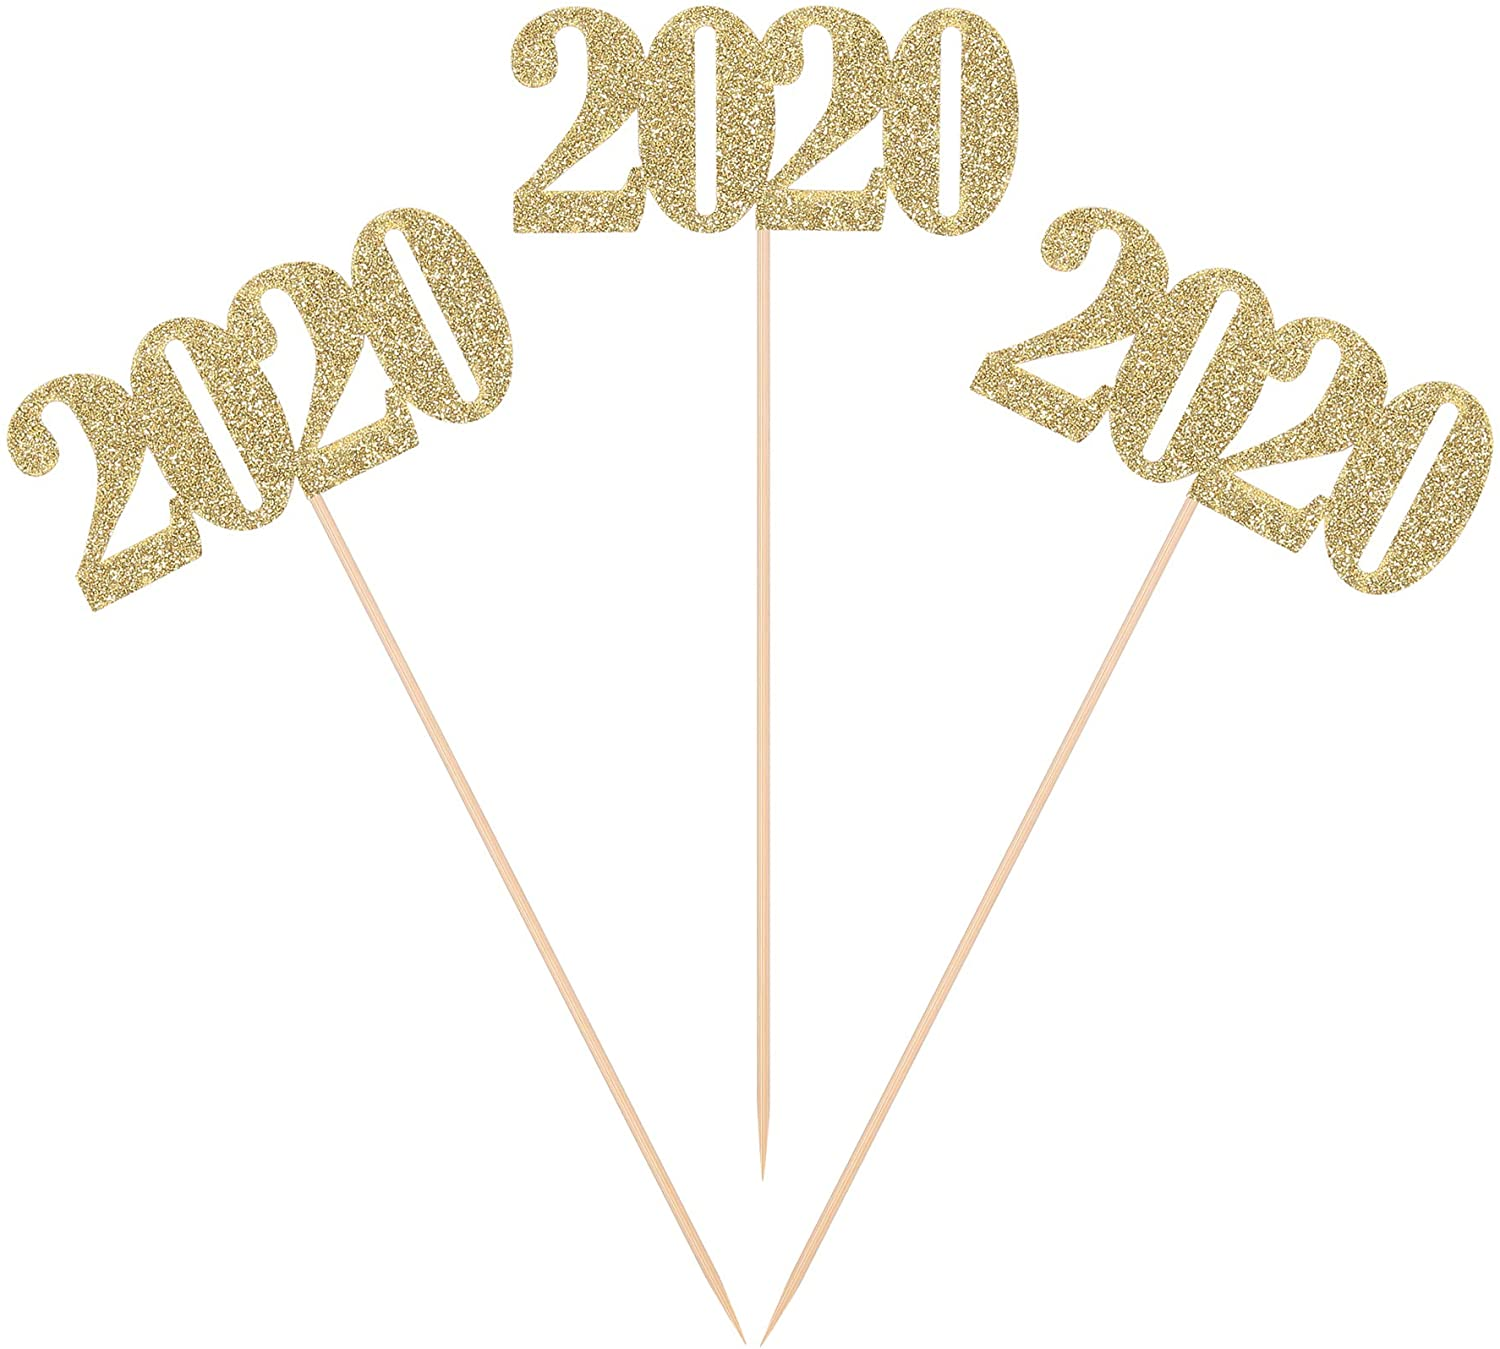 Pack of 10 Gold Glitter the Year of 2020 Centerpiece Sticks Graduation Party Decorations